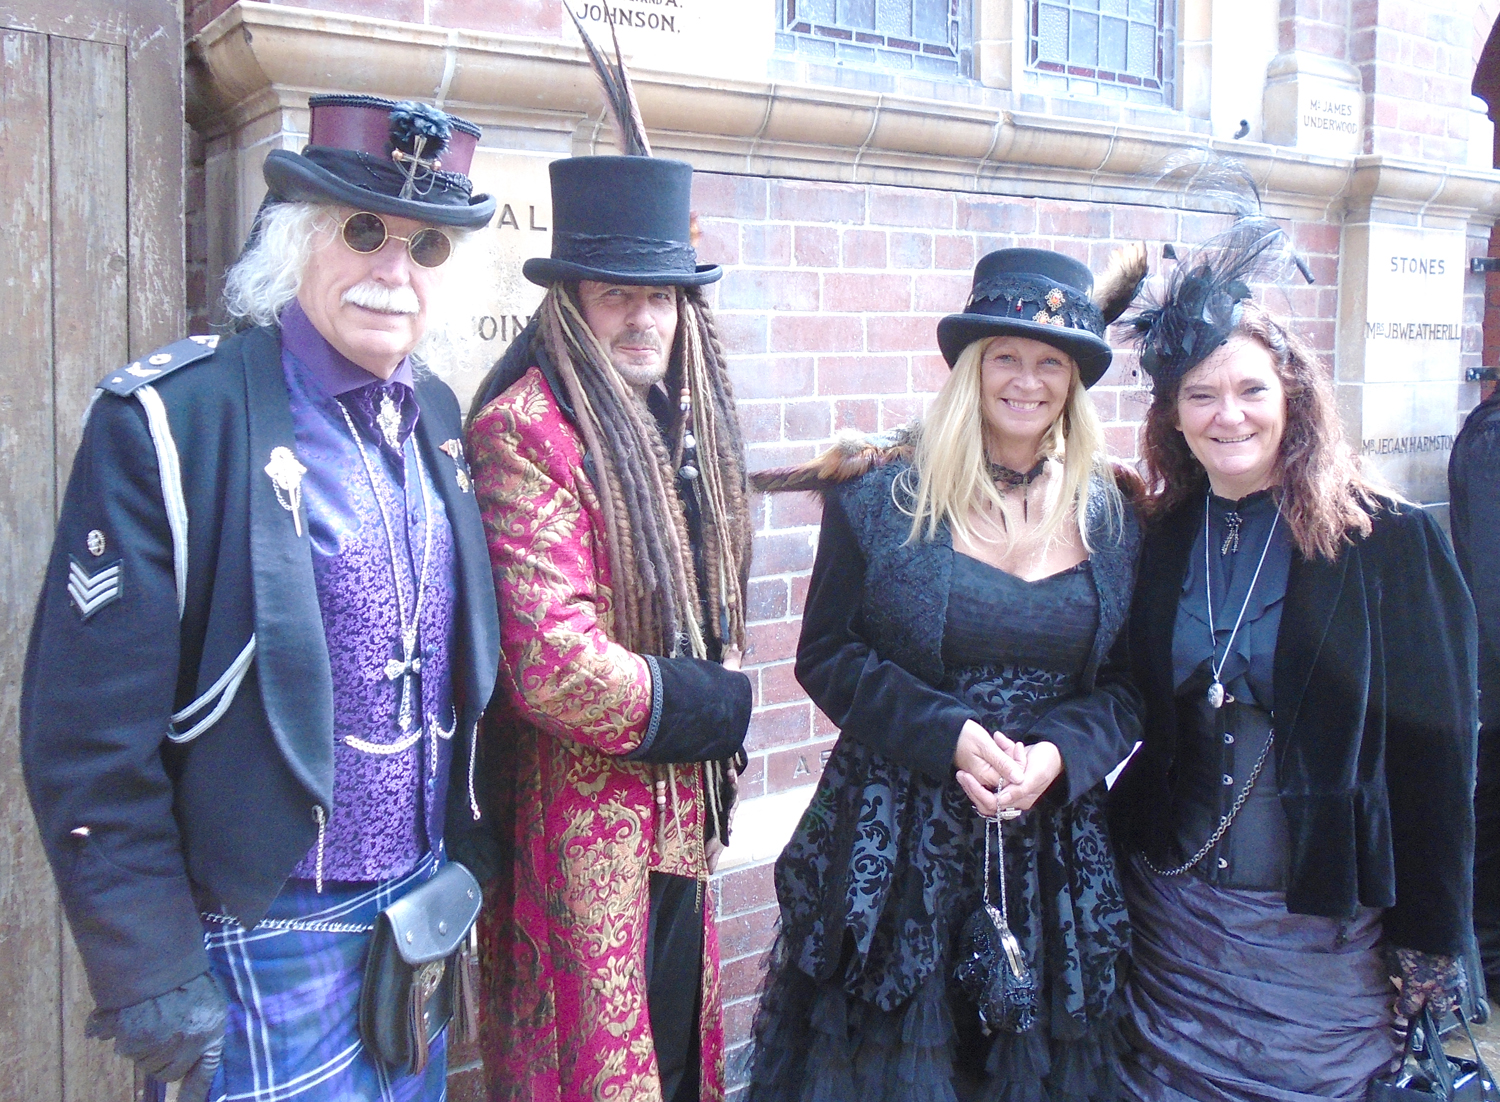 Residents Association Trip to Goth Festival